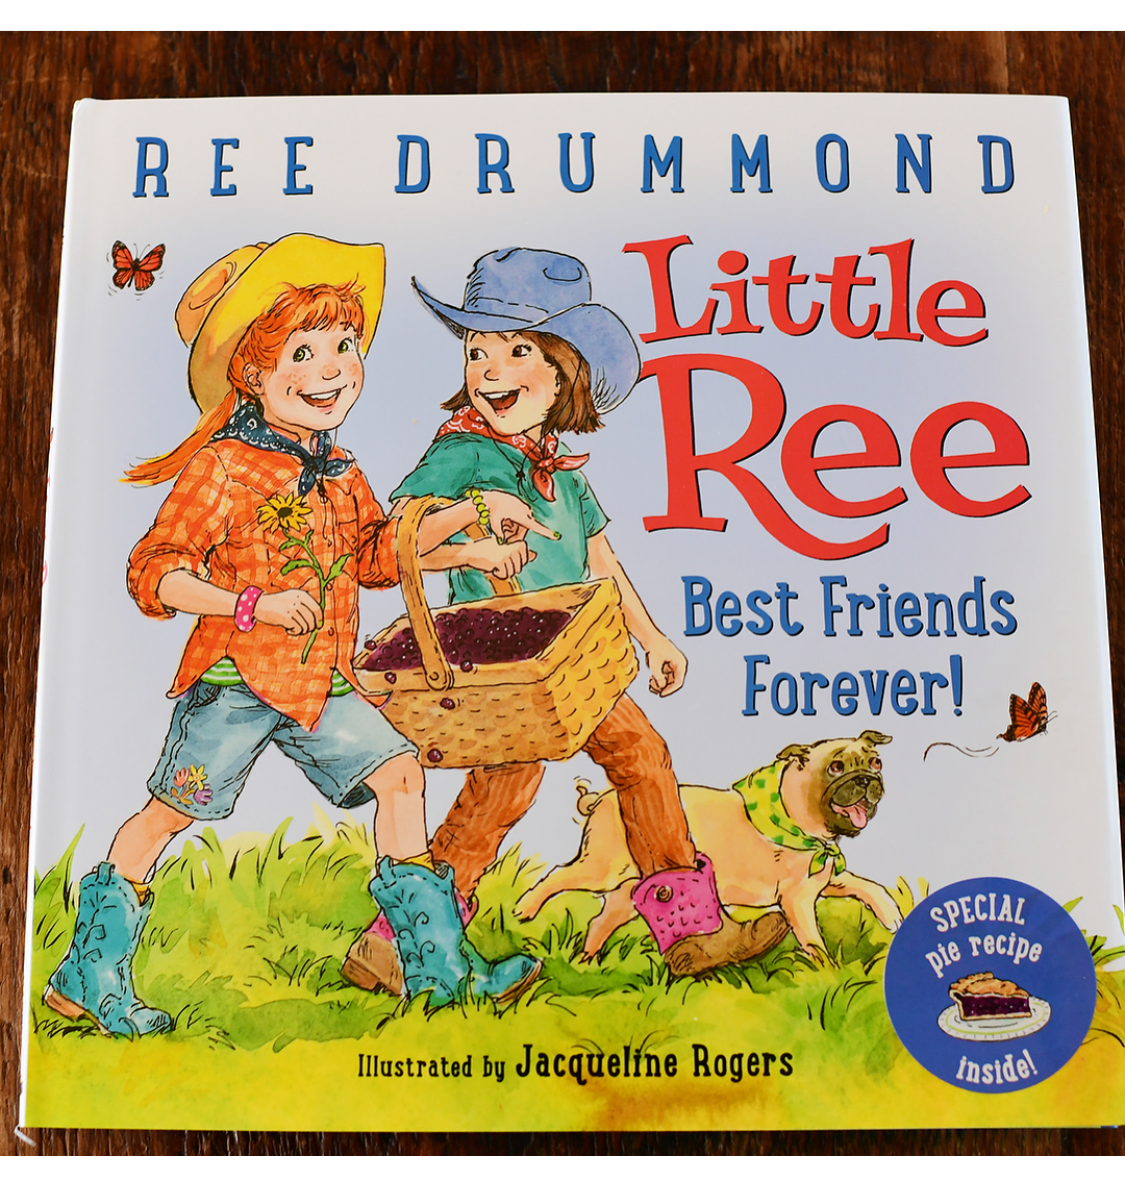 Ree Drummond New Book